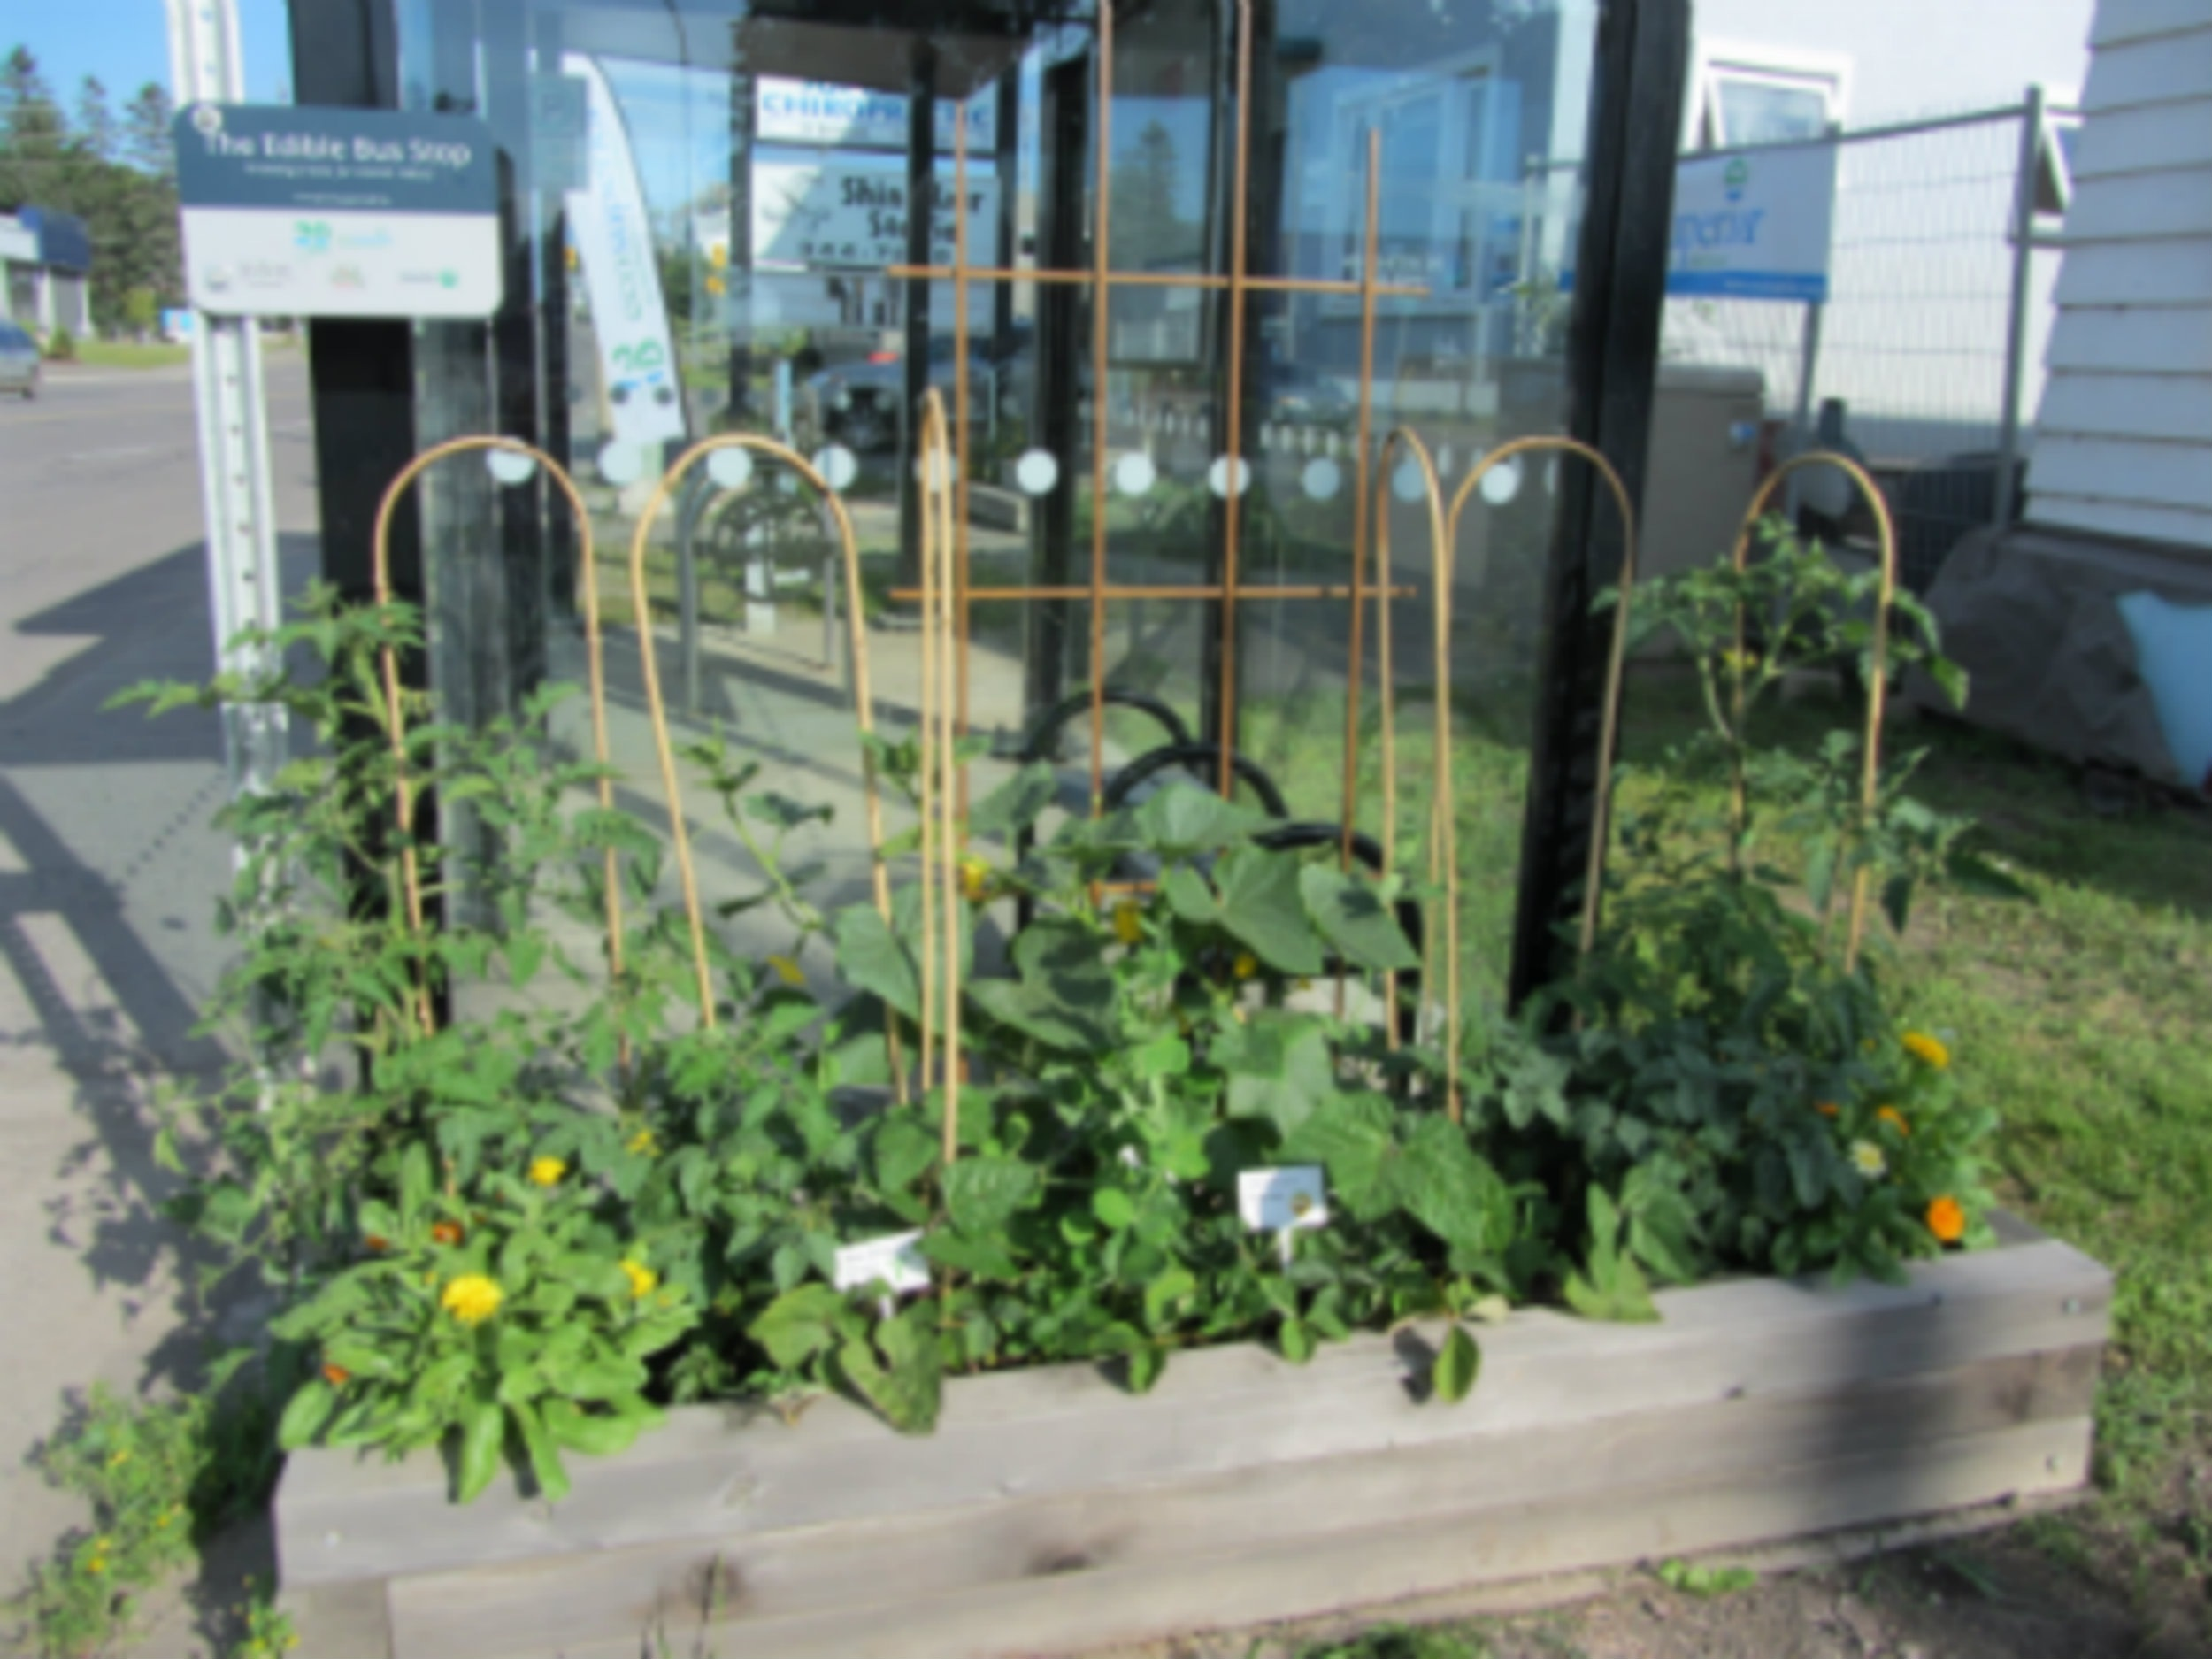 Pedestrian Peas? Thunder Bay's First Edible Bus Stop